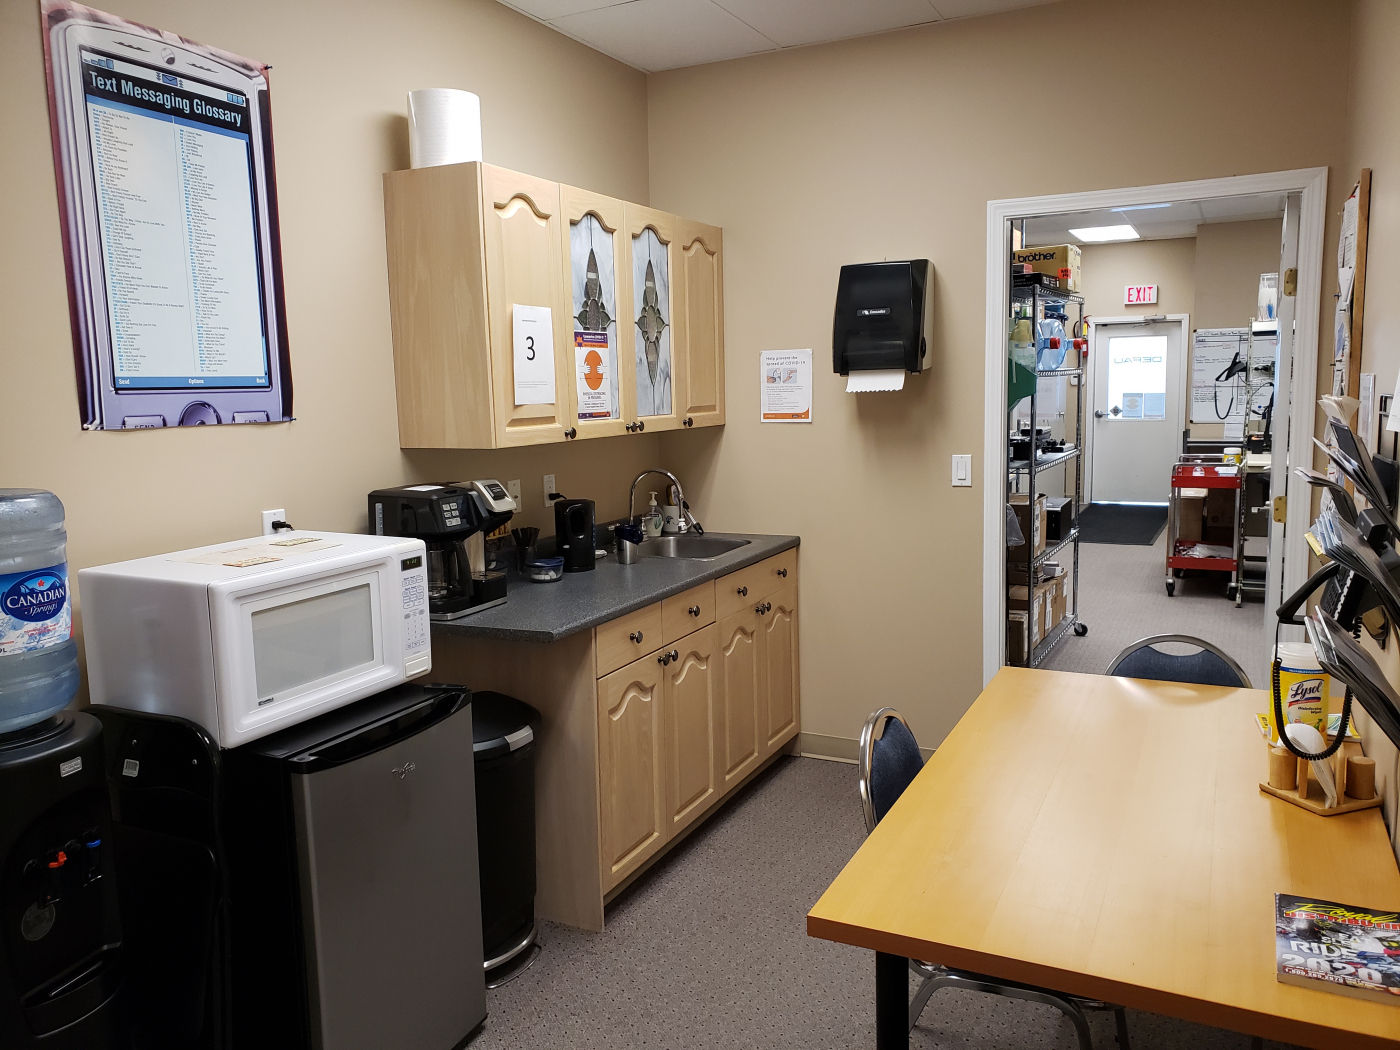 Office building in excellent condition is a business for sale in BC.